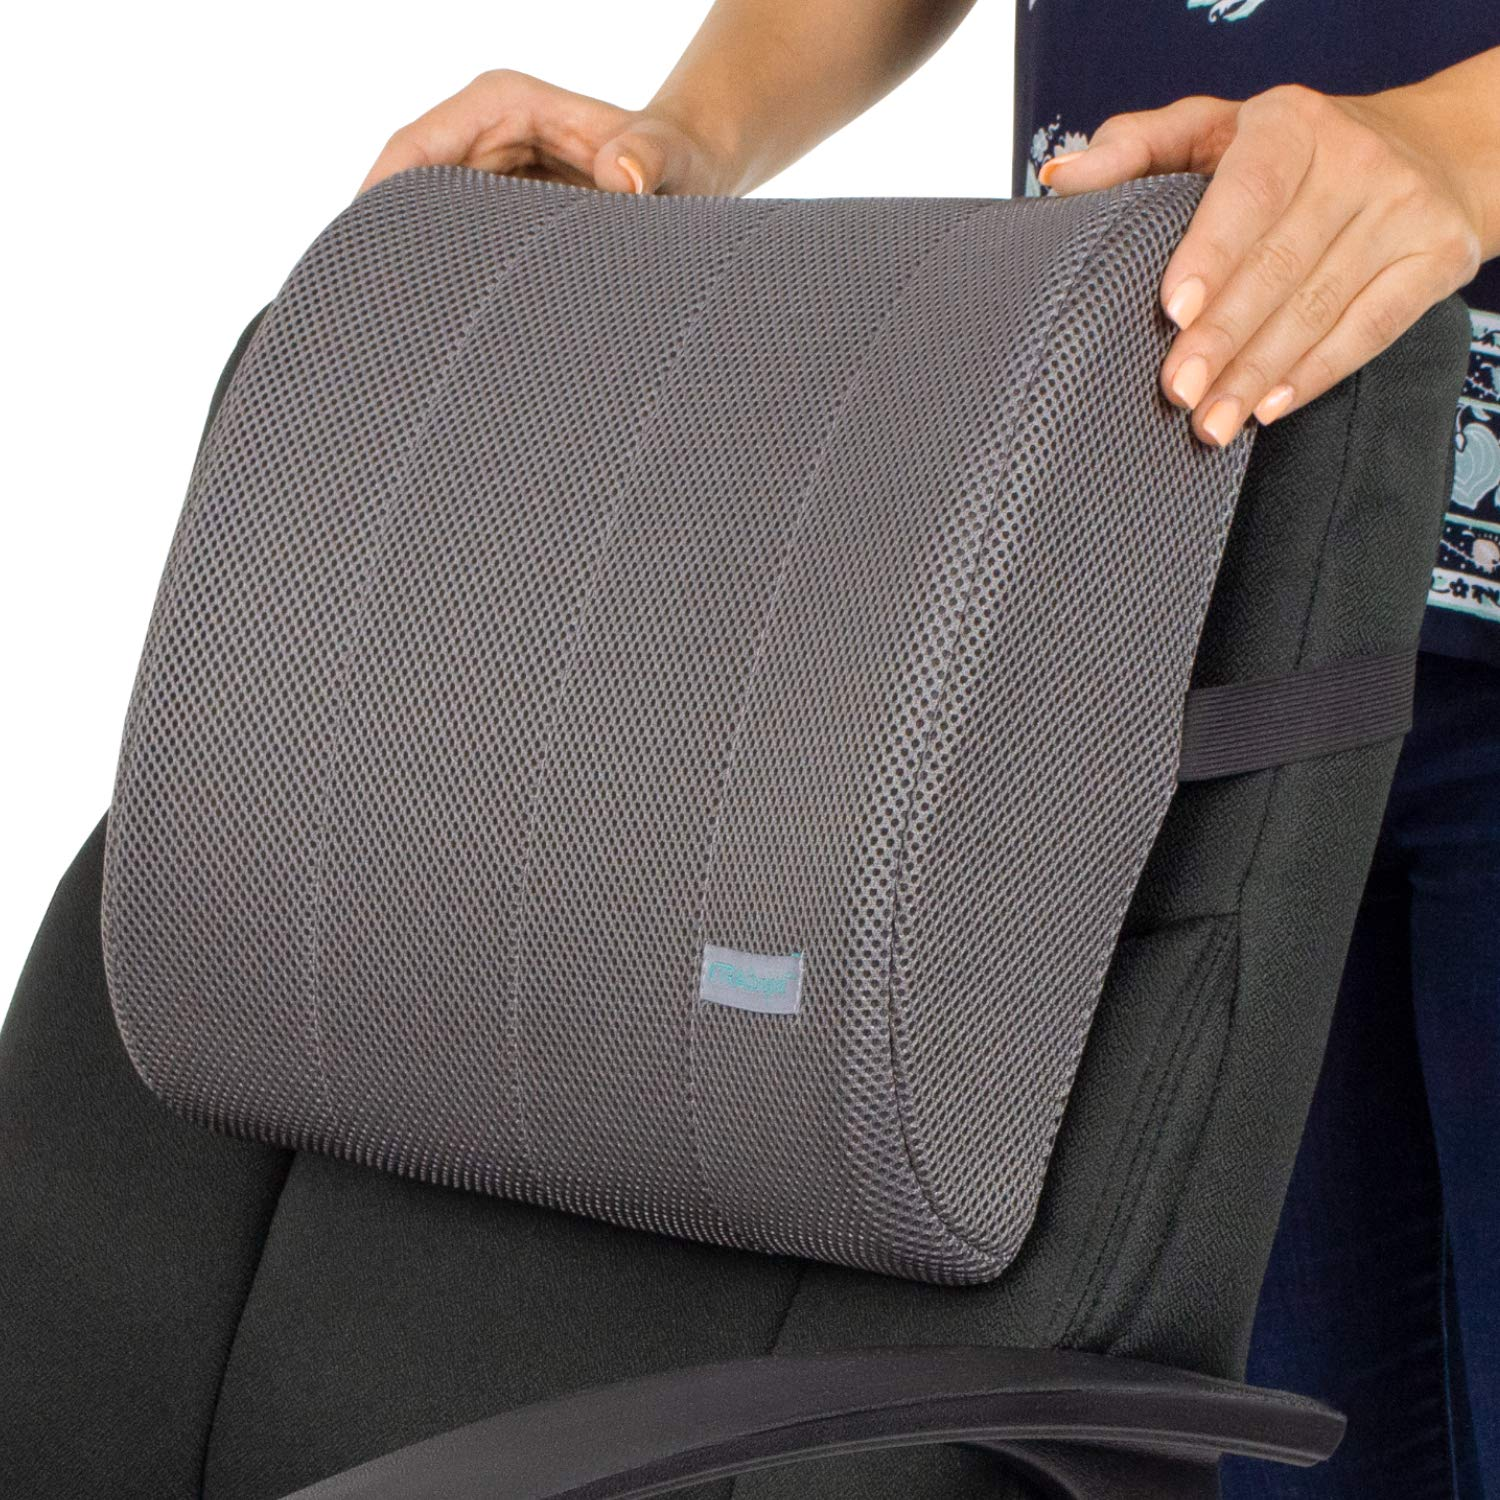 Xtra-Comfort Lumbar Support for Office Chair- Lumbar Pillow For Car, Gaming, Men, Women - Ergonomic Orthopedic Foam Roll & Adjustable Strap For Therapeutic Lower Pain Relief - Mesh Cover by Xtra-Comfort